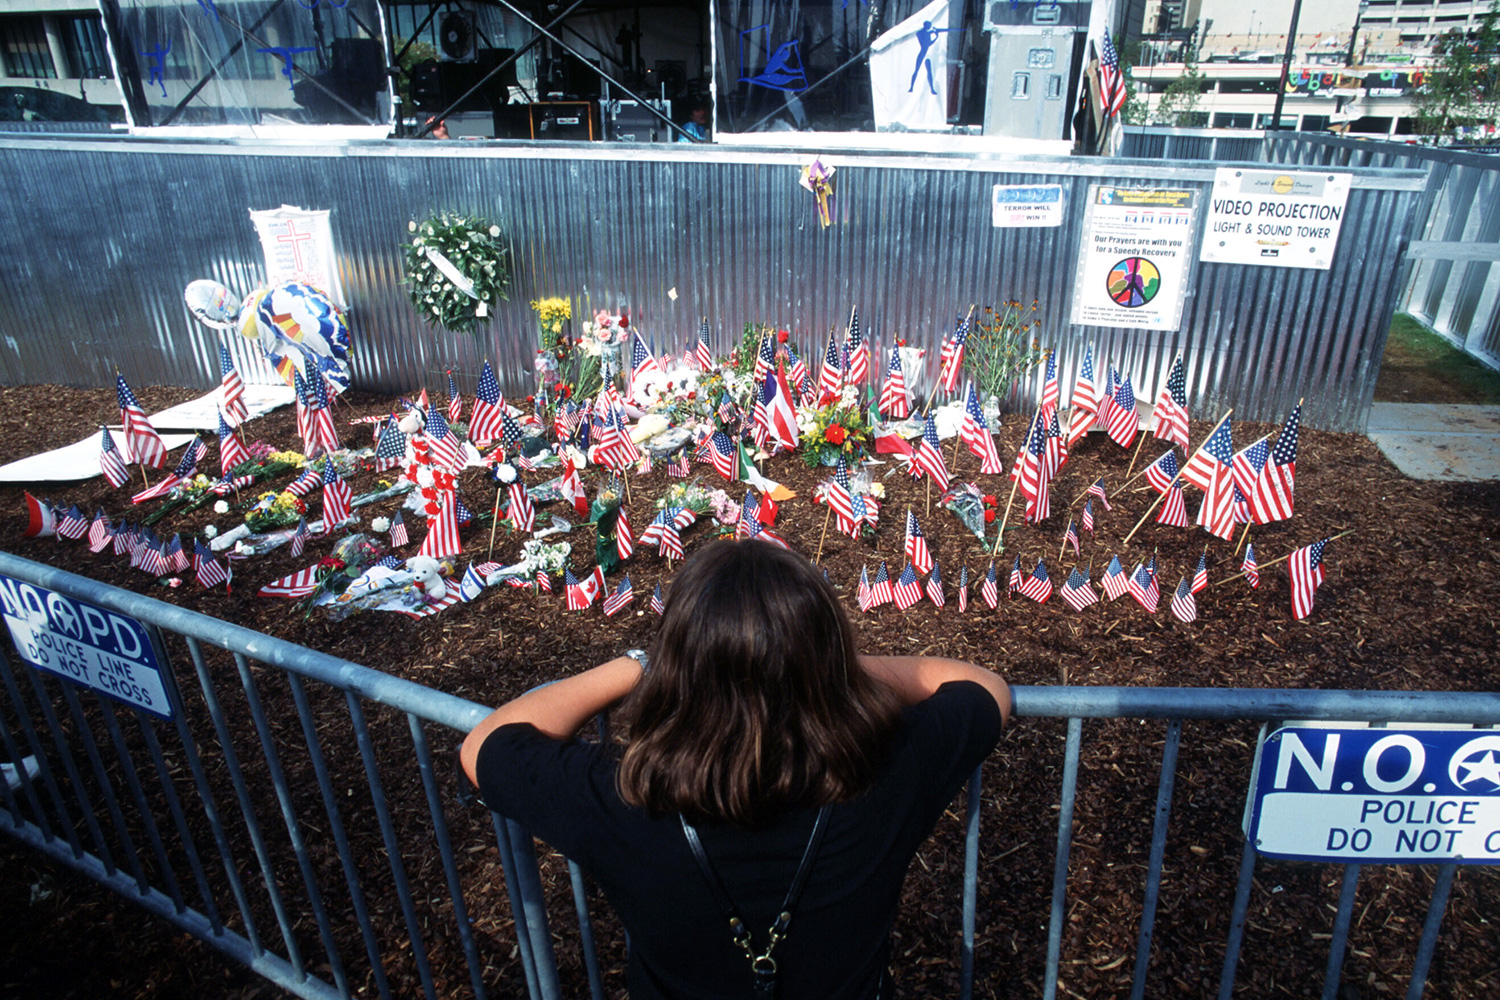 A woman stands in front of a shrine to the victims of the bomb explosion at the AT&T Pavillion in the Centennial Olympic Park during the 1996 Centennial Olympic Games July 27, 1996 in Atlanta, Georgia. Eric Robert Rudolph, accused of planting the bomb that killed two people and injured scores, has been arrested May 31, 2003 in North Carolina